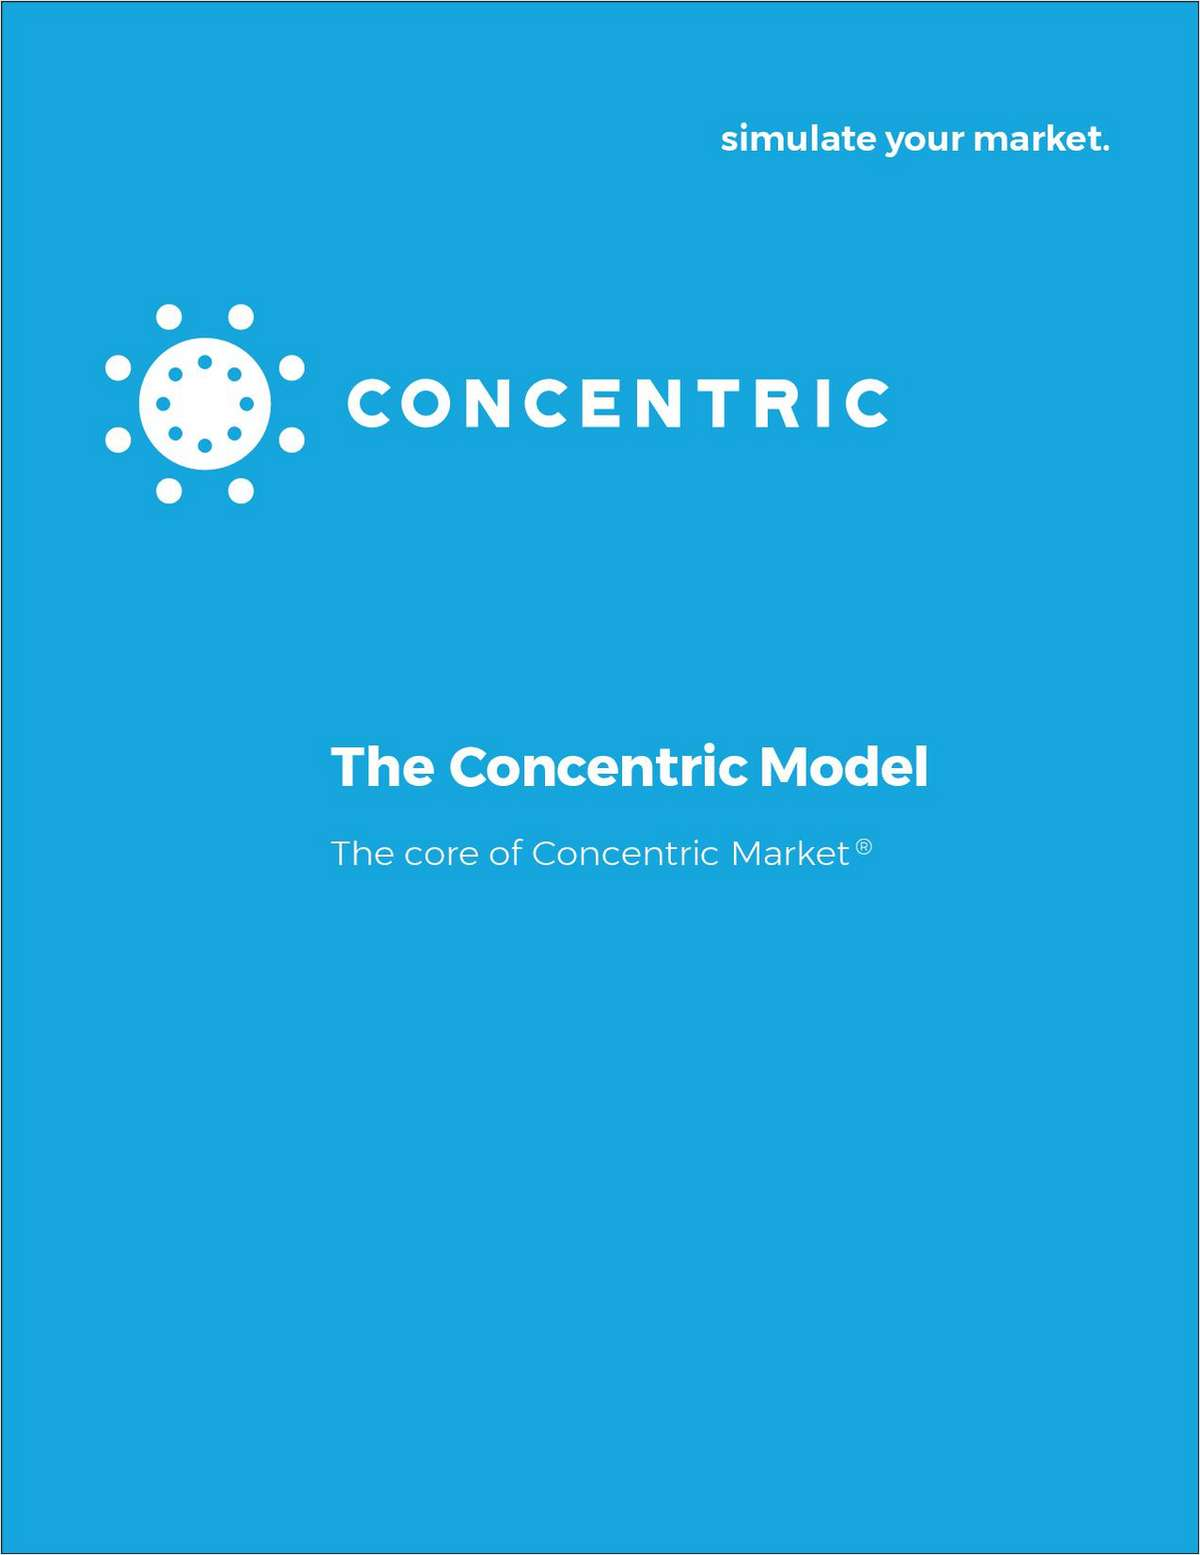 The Concentric Model: The Core of Concentric Market